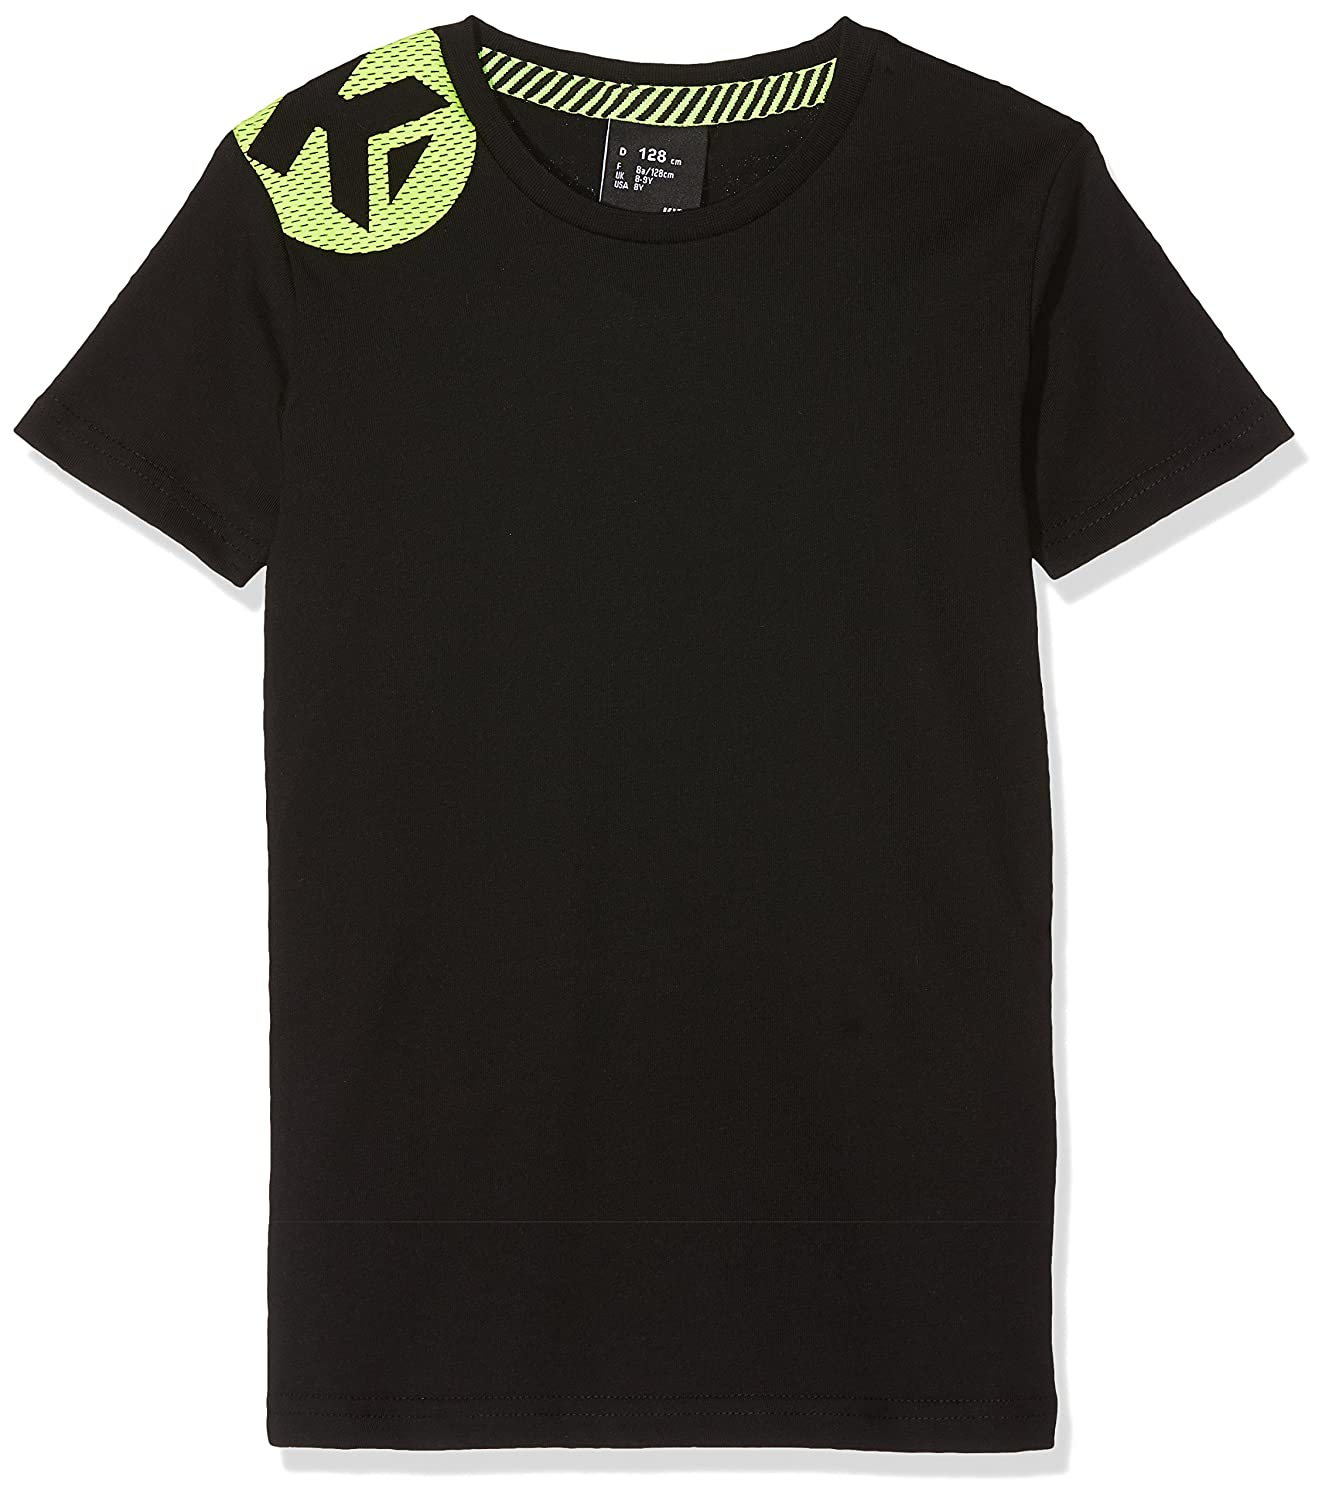 TALLA 128. Kempa Caution – Camiseta de